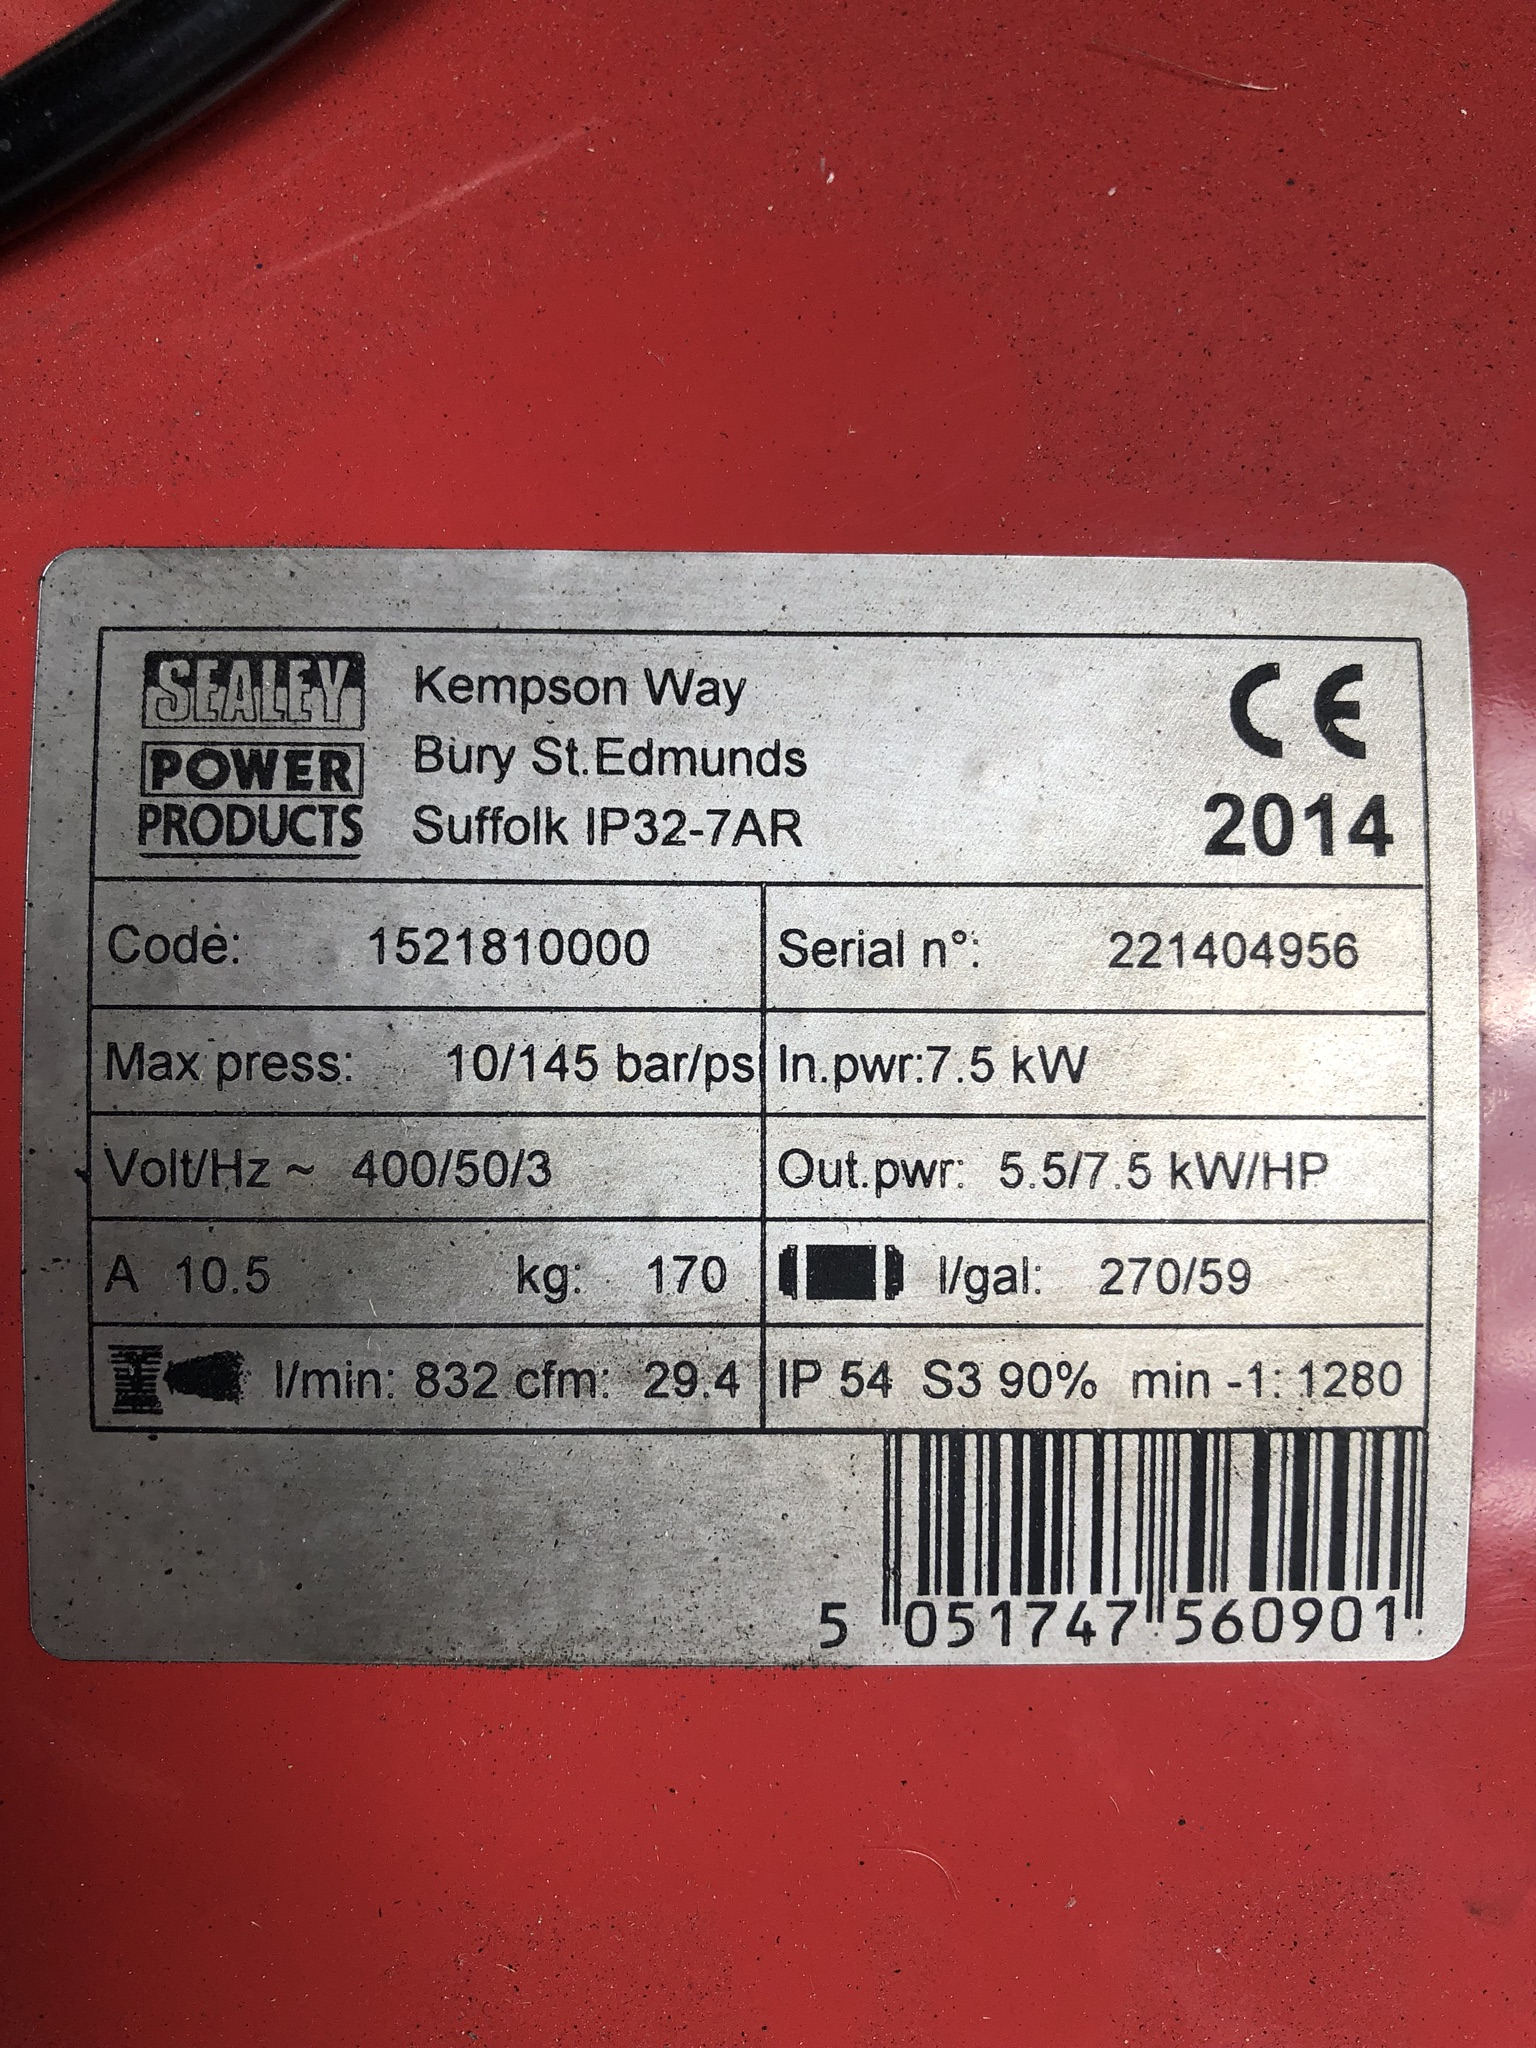 Sealey 270L Receiver Mounted Air Compressor, serial no. 221404956, year of manufacture 2014, approx. - Image 3 of 4